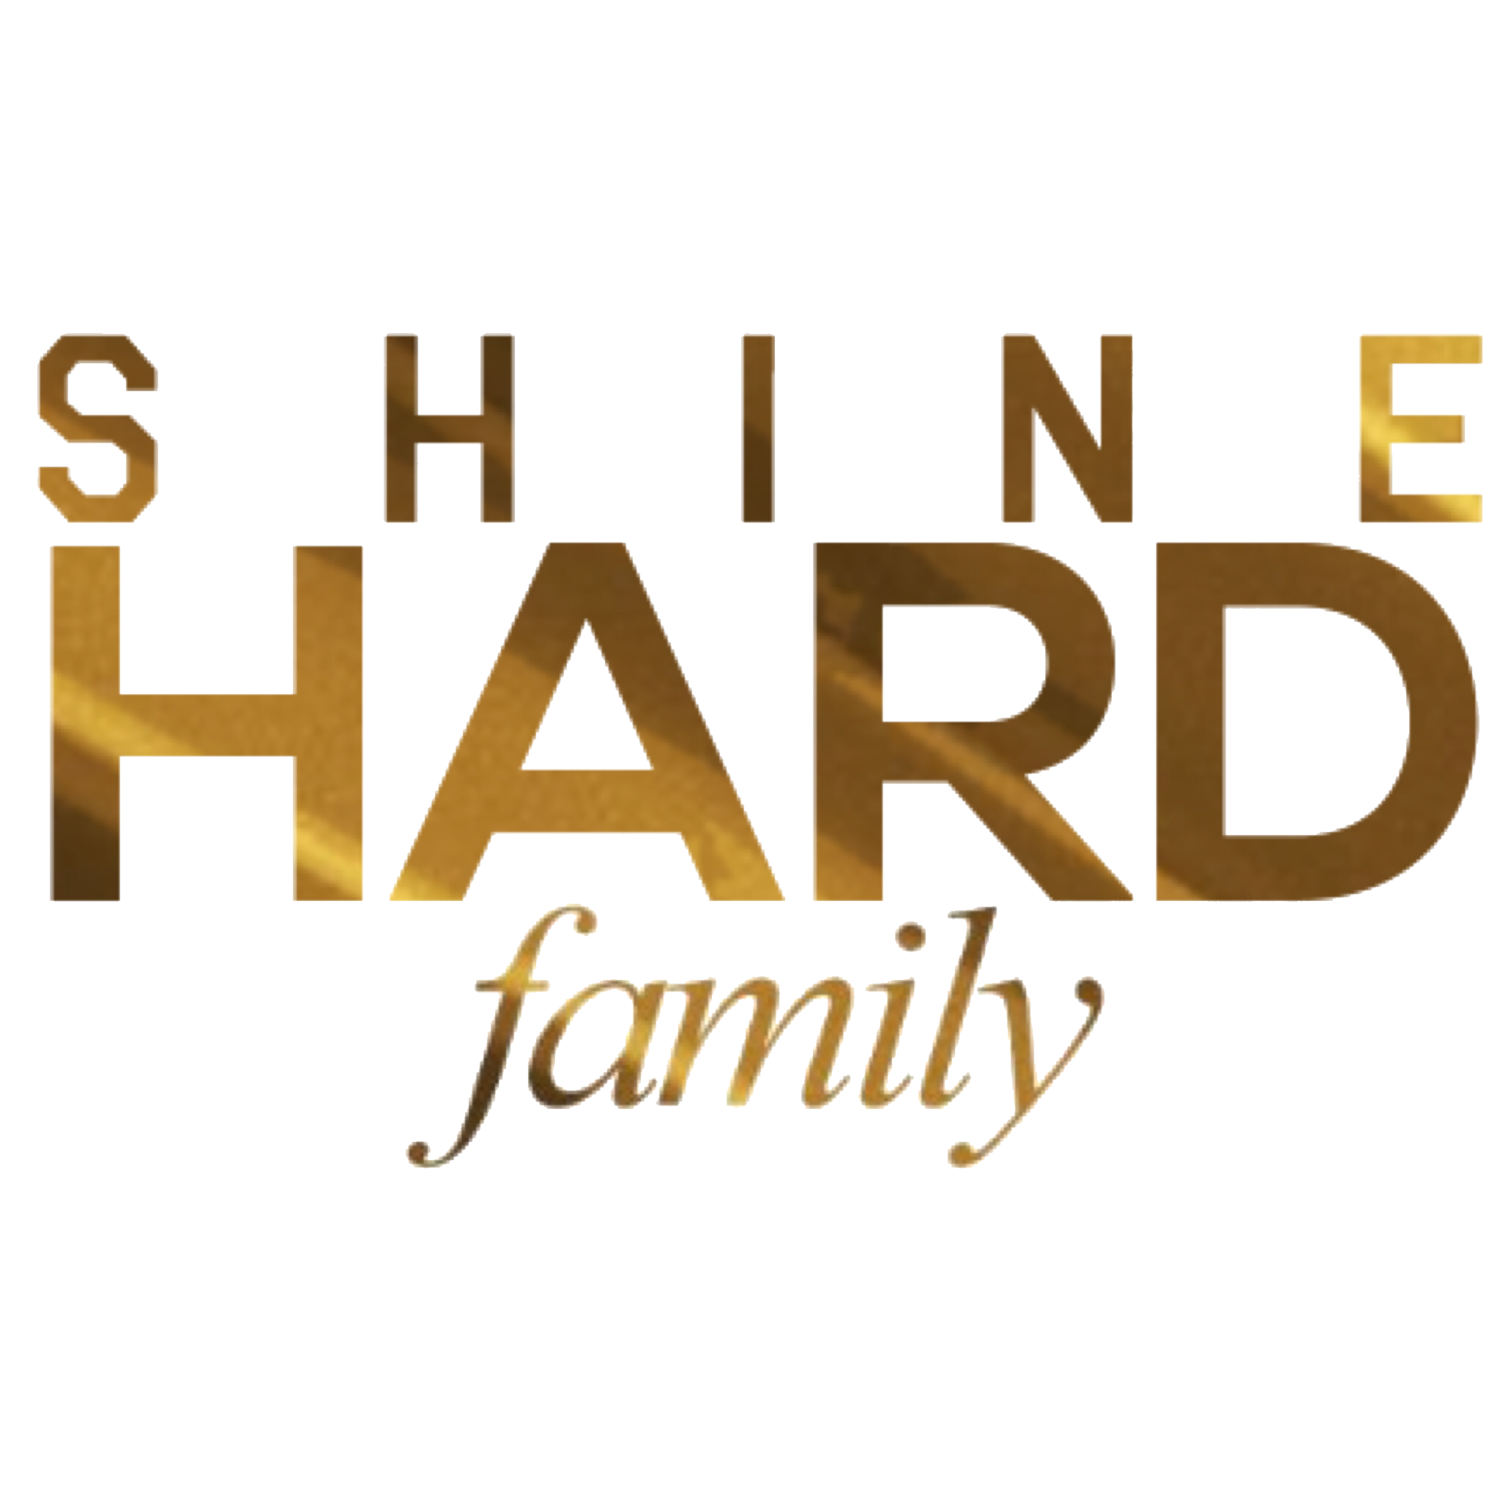 The ShineHard Family